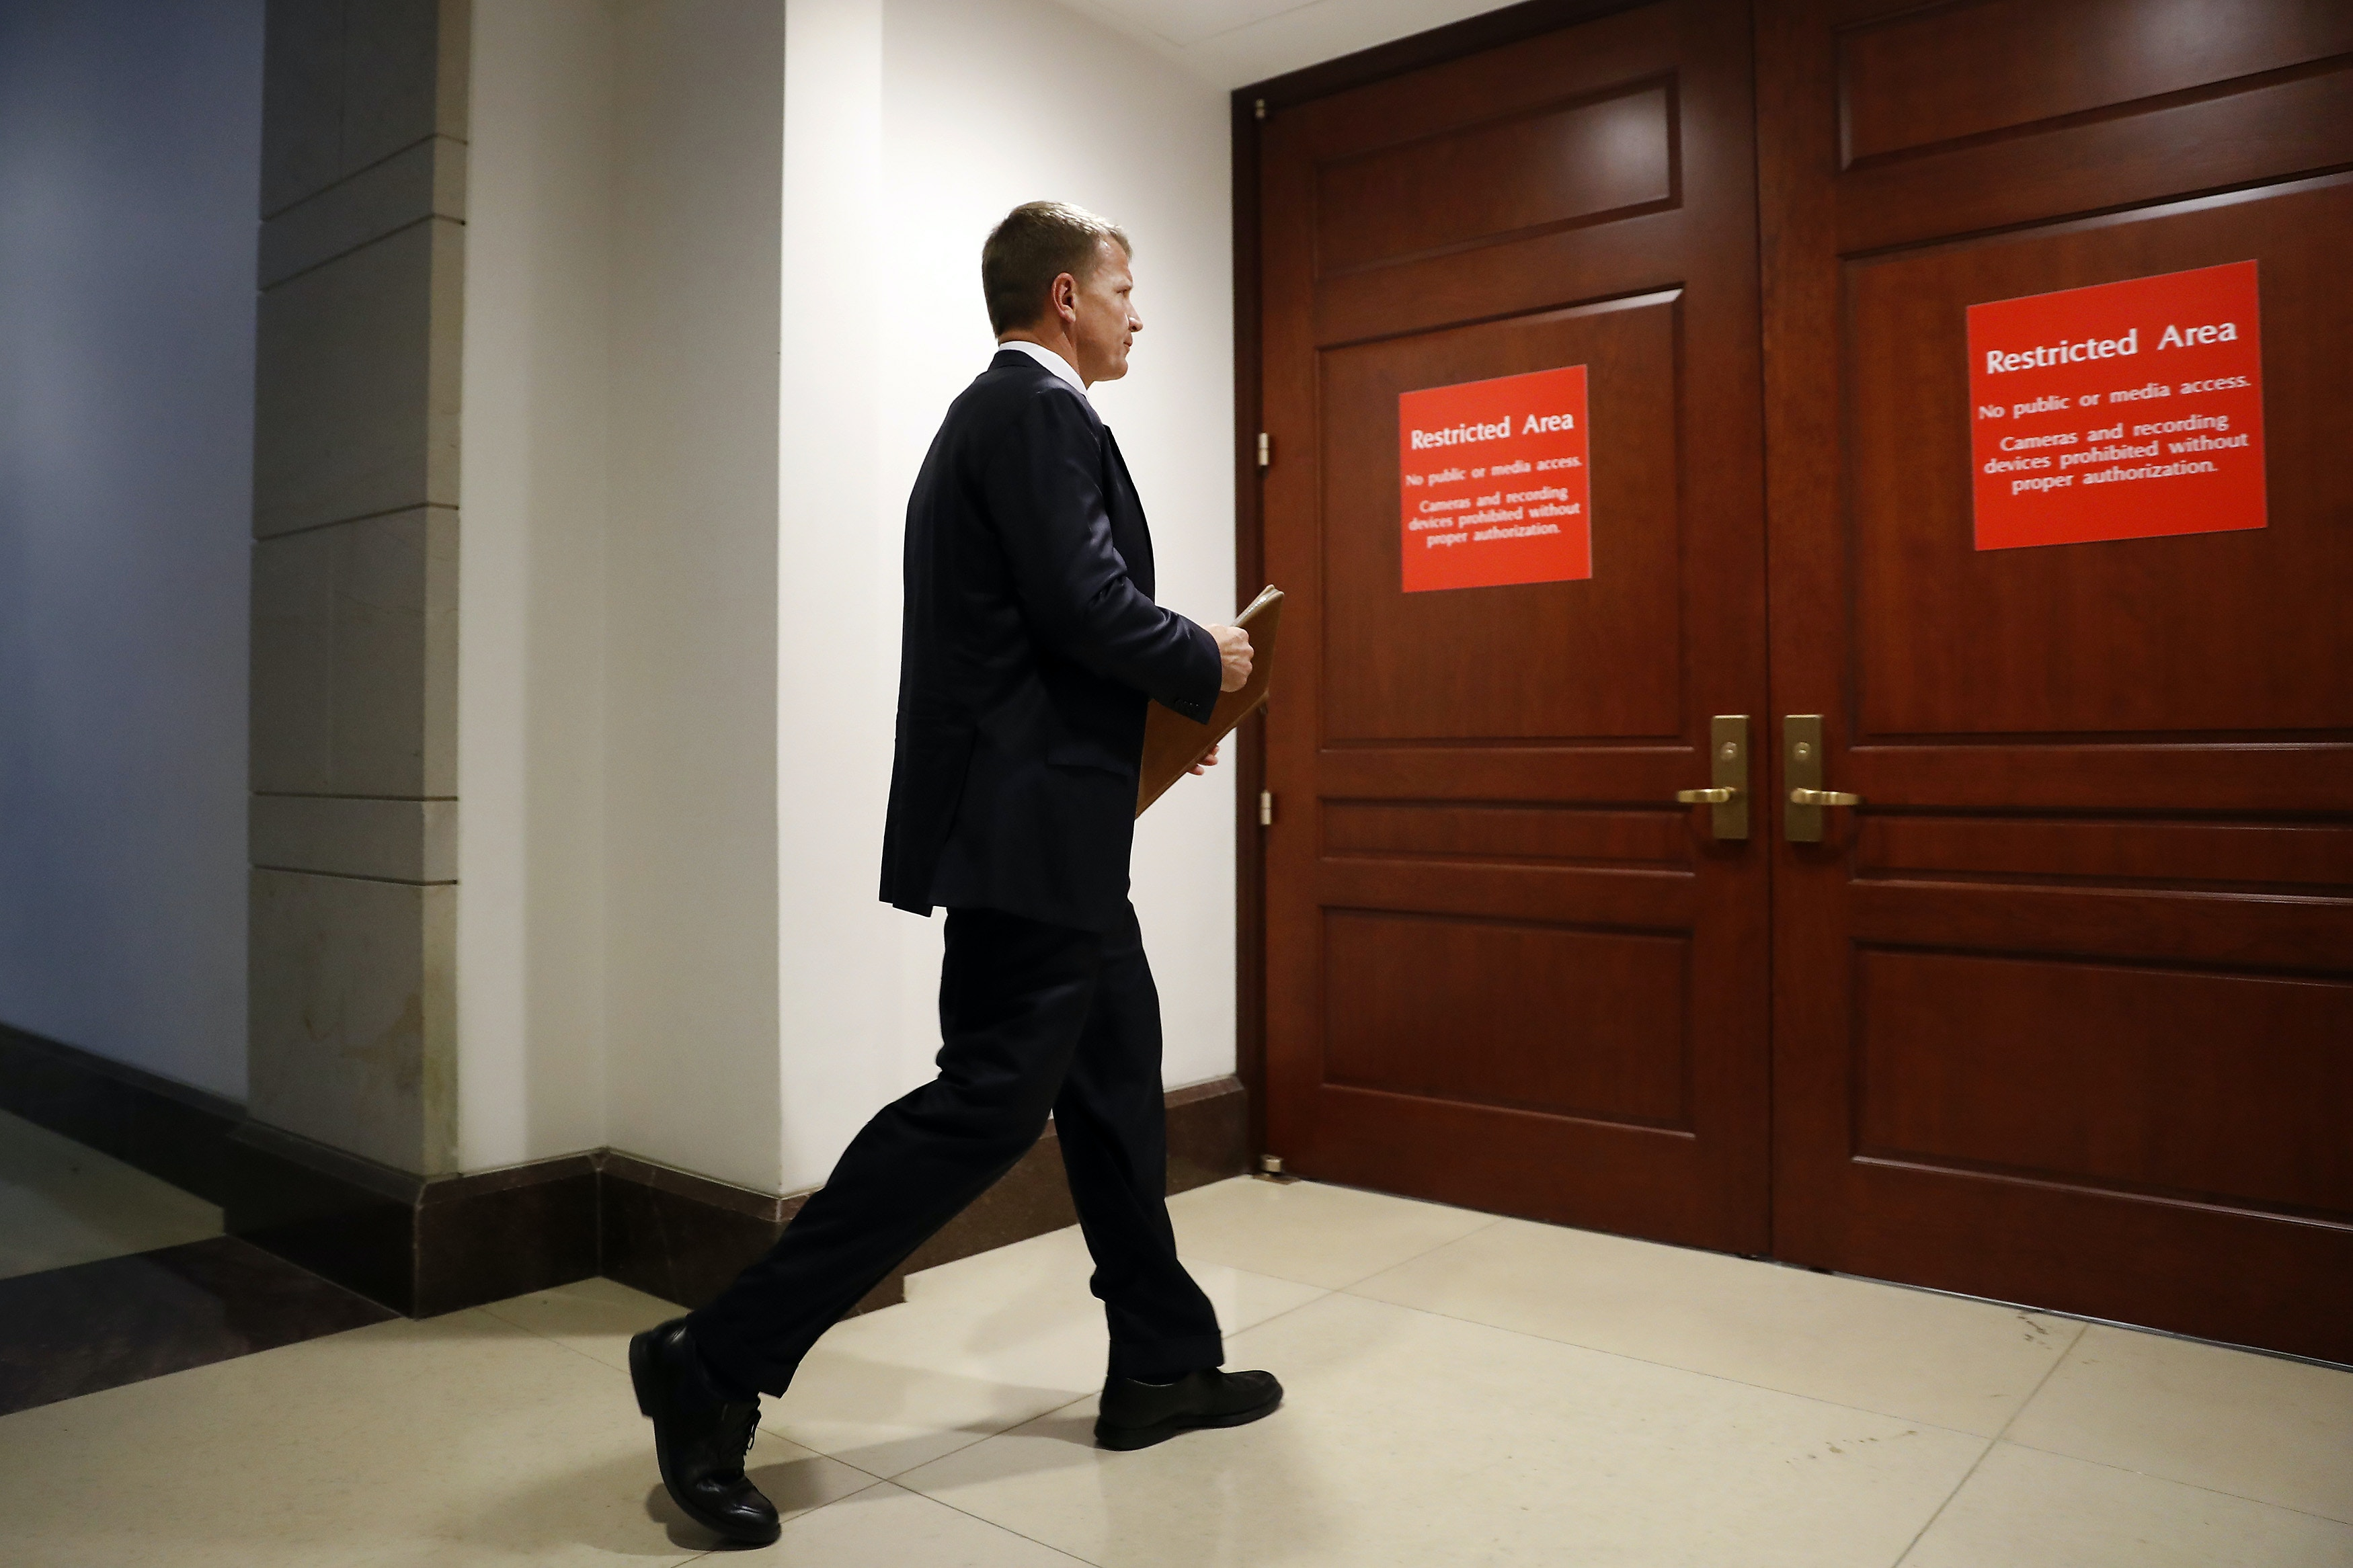 Erik Prince, chairman and executive director of Frontier Services Group Ltd., walks to a closed-door House Intelligence Committee meeting on Capitol Hill in Washington, D.C., U.S., on Thursday, Nov. 30, 2017. Prince, best known for running the Blackwater private security firm whose employees were convicted of killing Iraqi citizens, was a presence during Donald Trump's presidential transition and worked in part with Michael Flynn. Photographer: Aaron P. Bernstein/Bloomberg via Getty Images